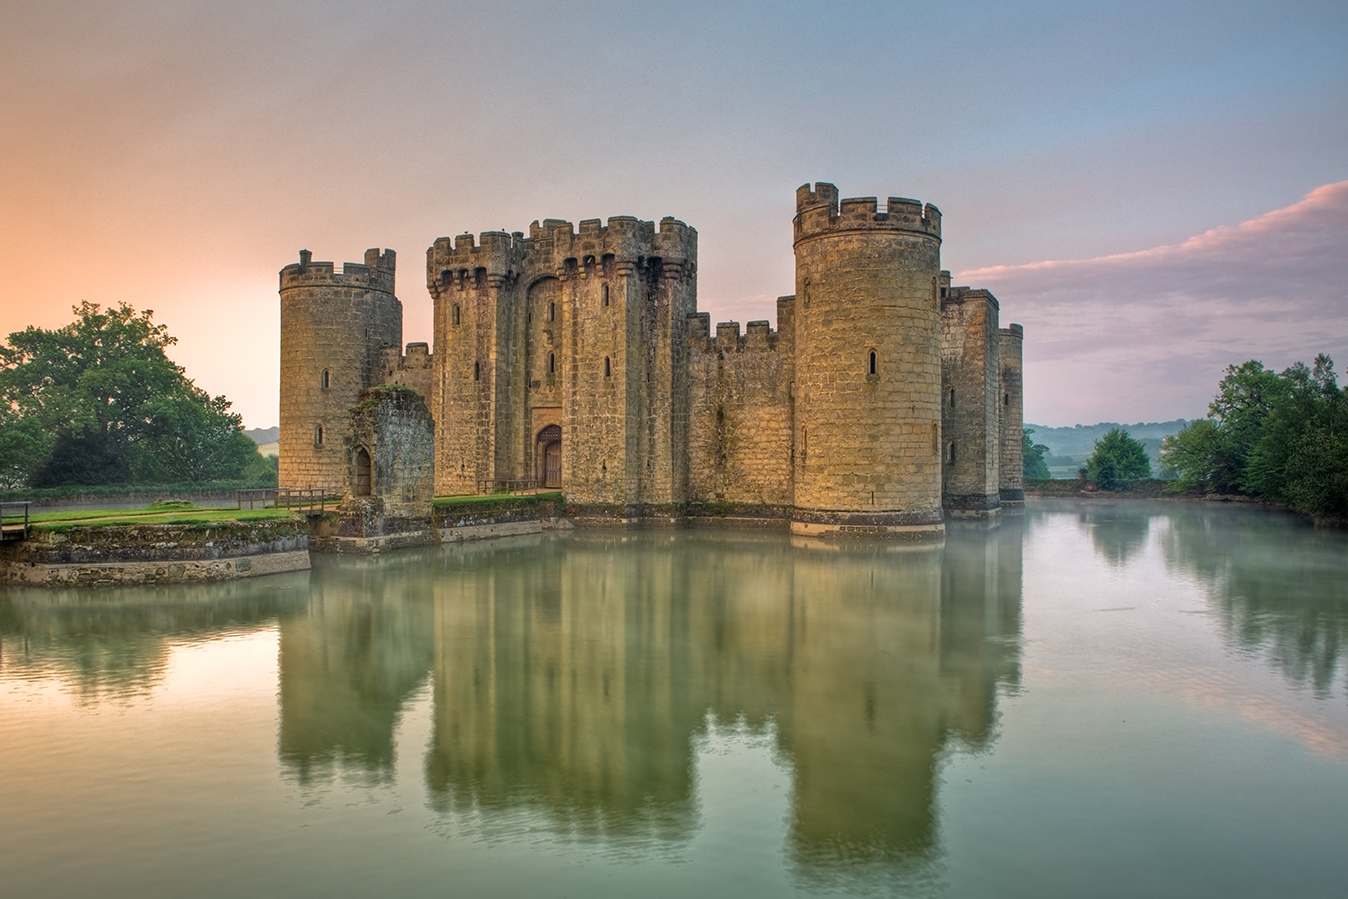 http://upload.wikimedia.org/wikipedia/commons/5/50/Bodiam-castle-10My8-1197.jpg